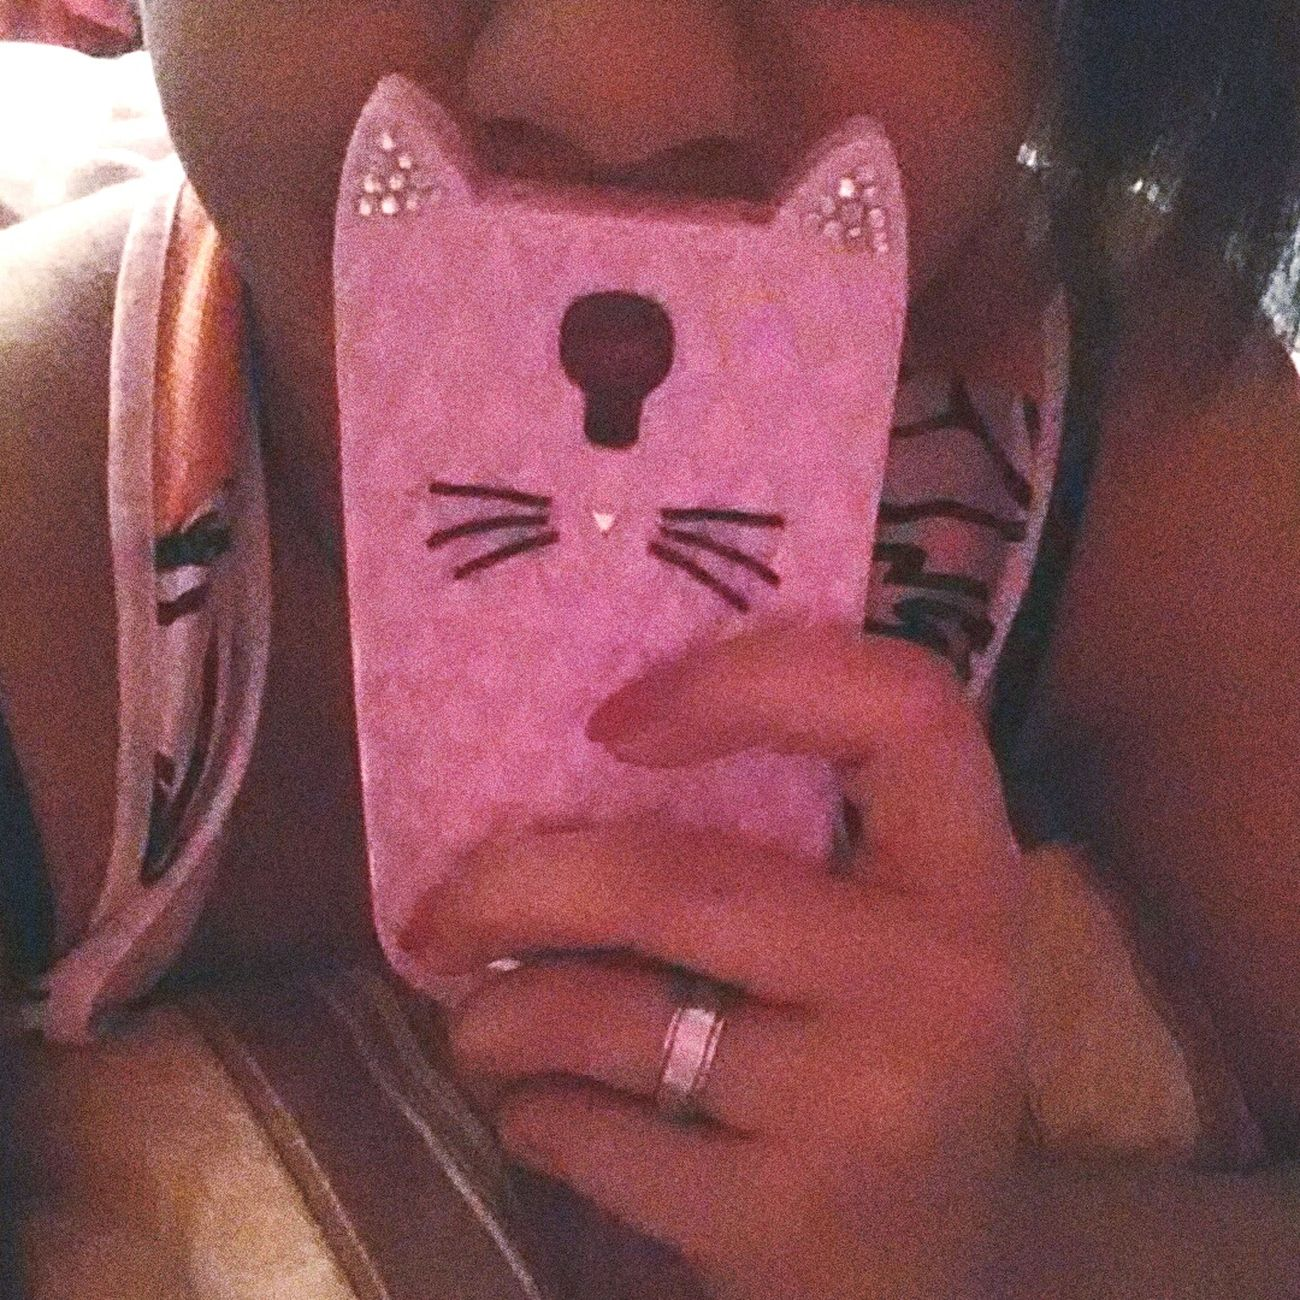 New phone case ♡ Phonecase New Girl Girly Follow Kittypurry